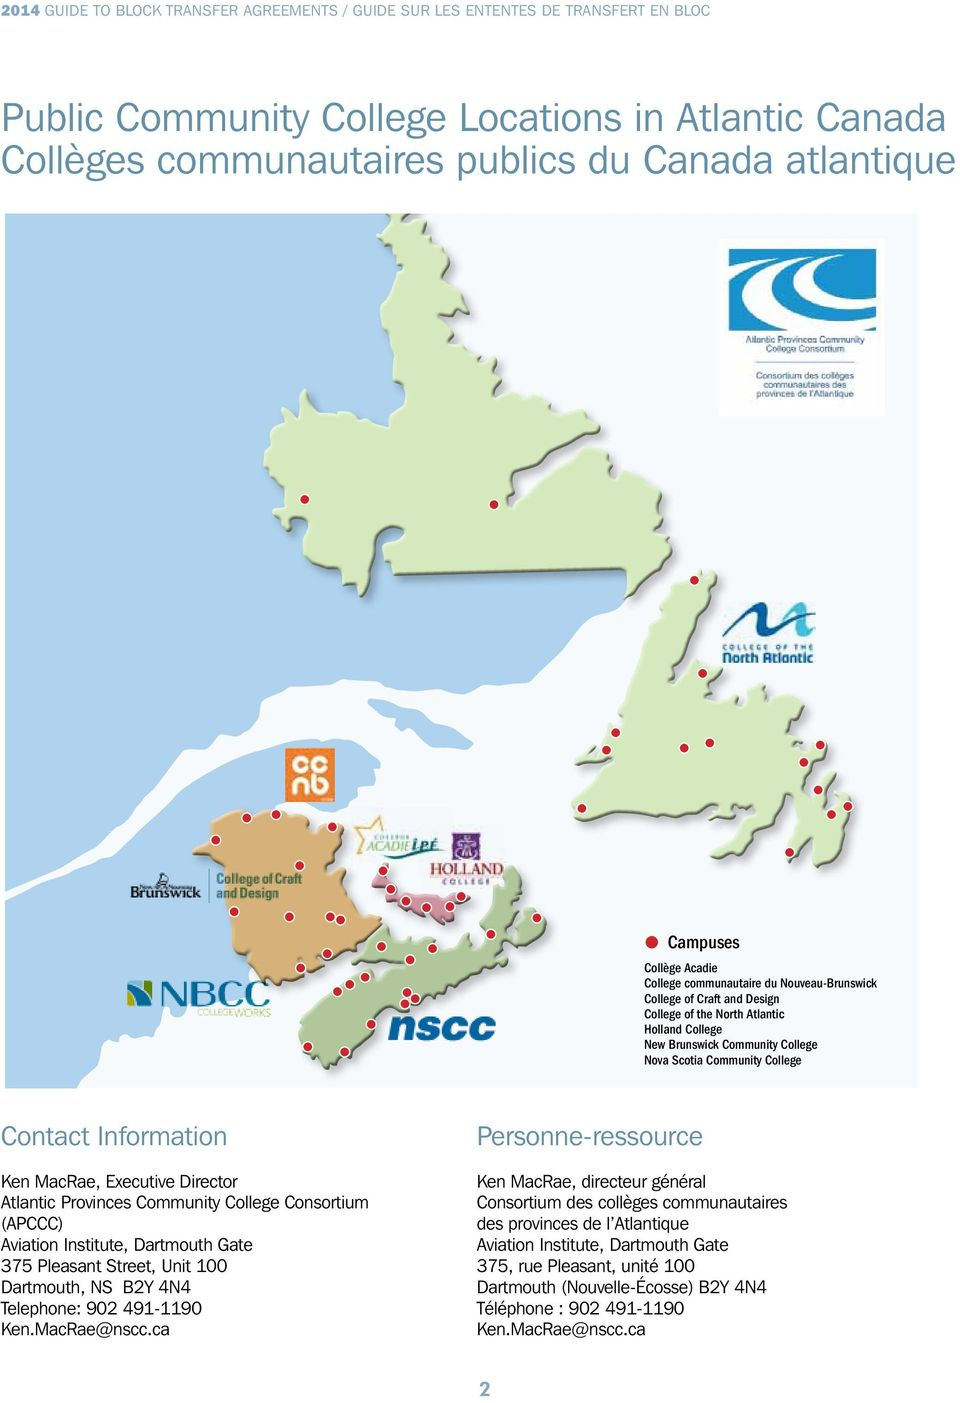 College Consortium (APCCC) Aviation Institute, Dartmouth Gate 375 Pleasant Street, Unit 100 Dartmouth, NS B2Y 4N4 Telephone: 902 491-1190 Ken.MacRae@nscc.